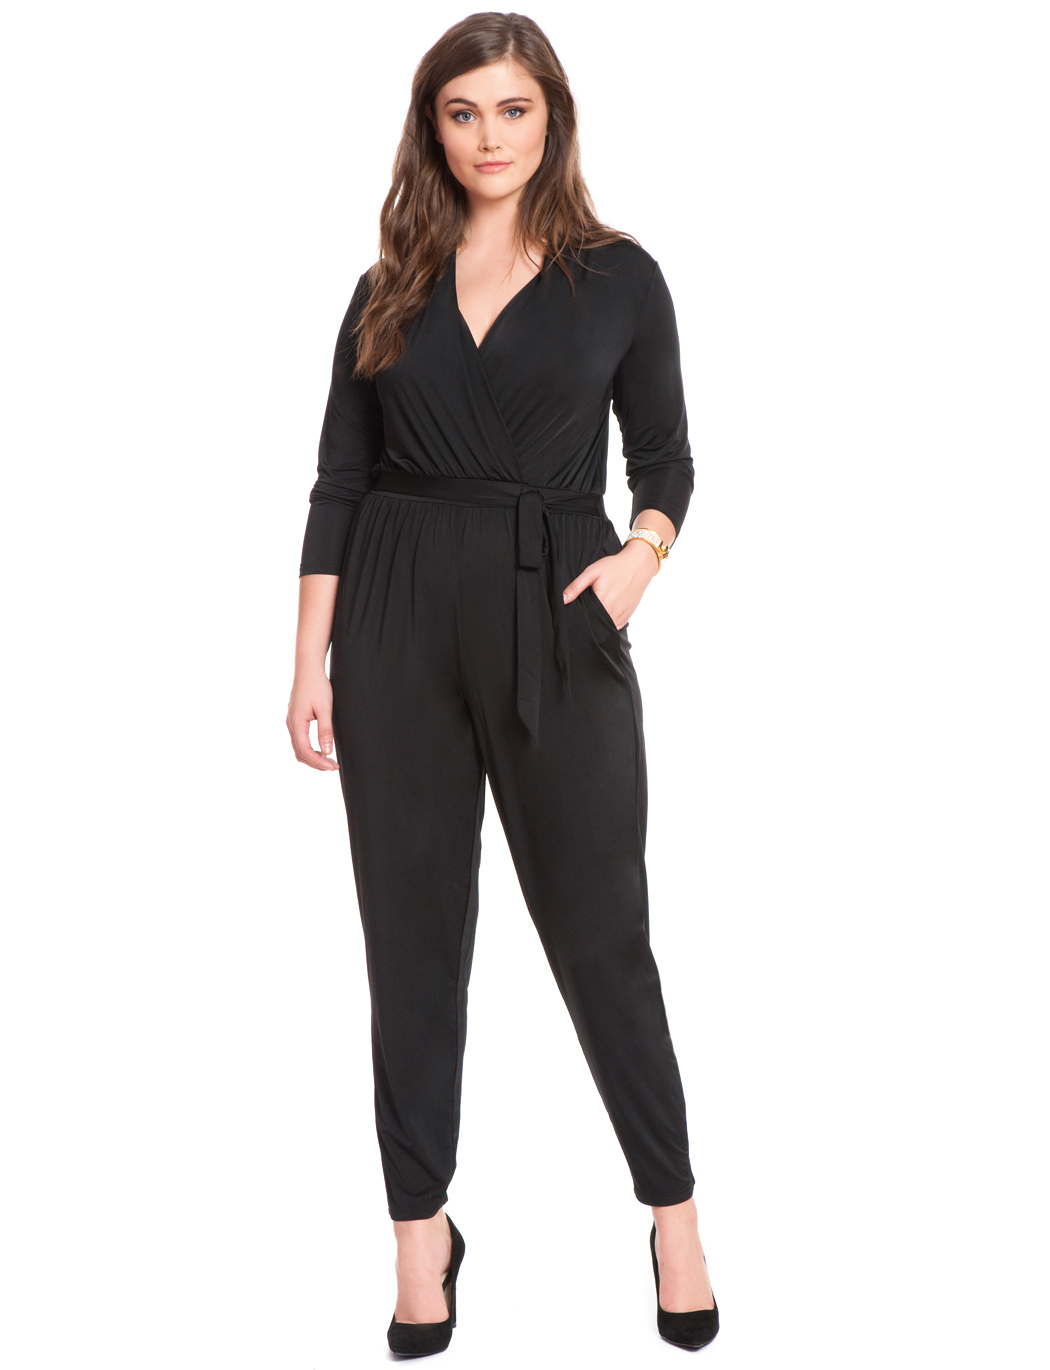 12 Plus Size Jumpsuits Perfect For Your Body Type ...